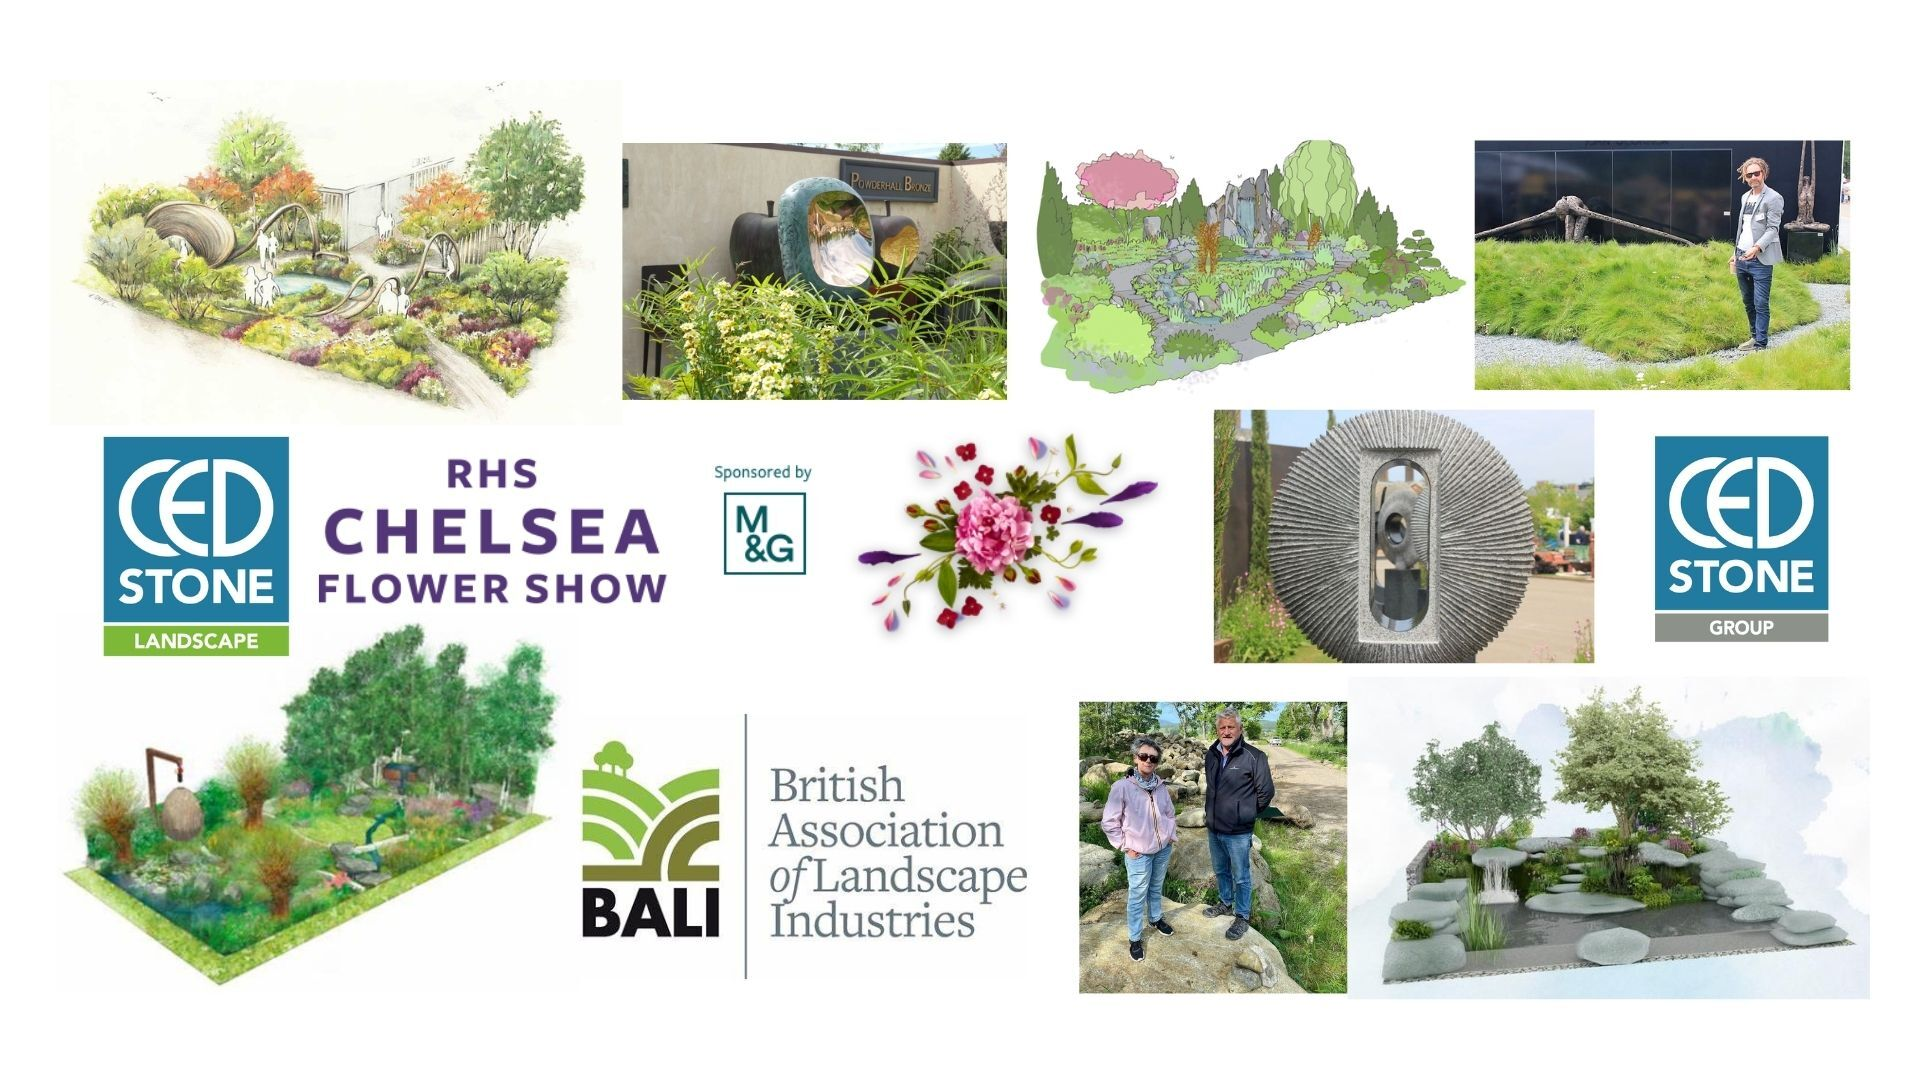 CED Stone Excited For The Return of The RHS Chelsea Flower Show